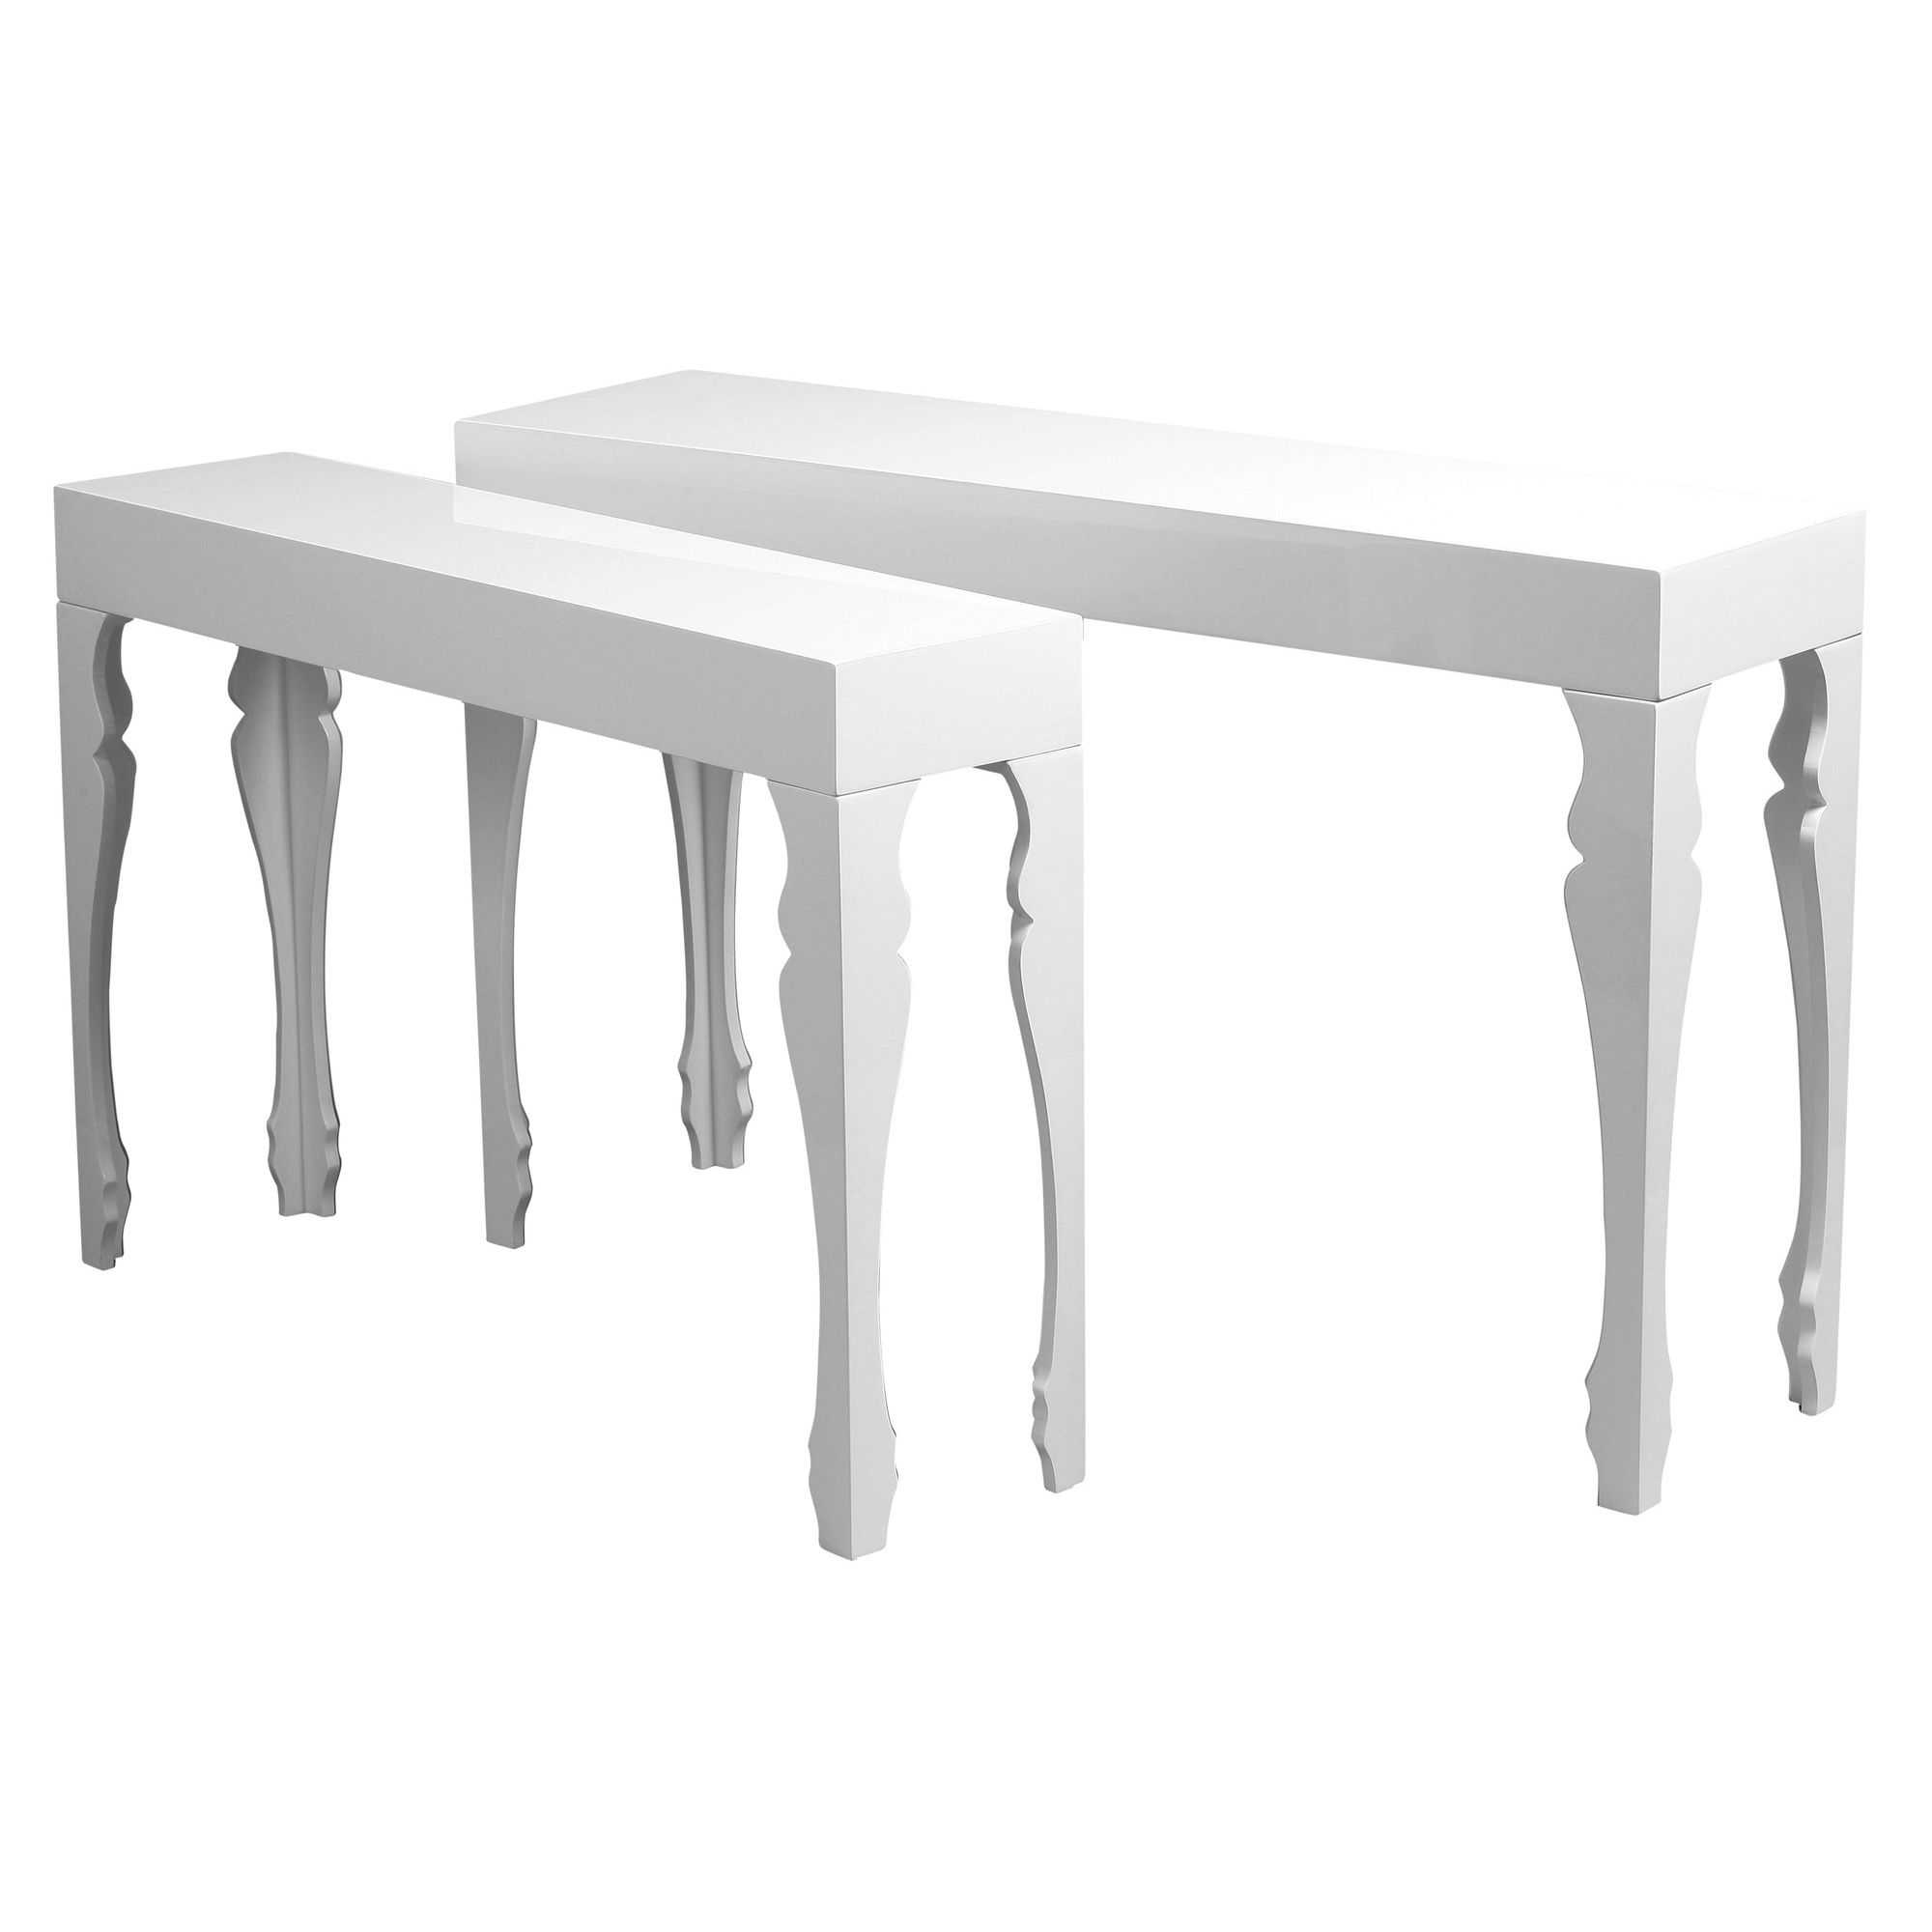 Premier Housewares Luis Accent Tables (Set of 2) - White High Gloss at Tesco Direct